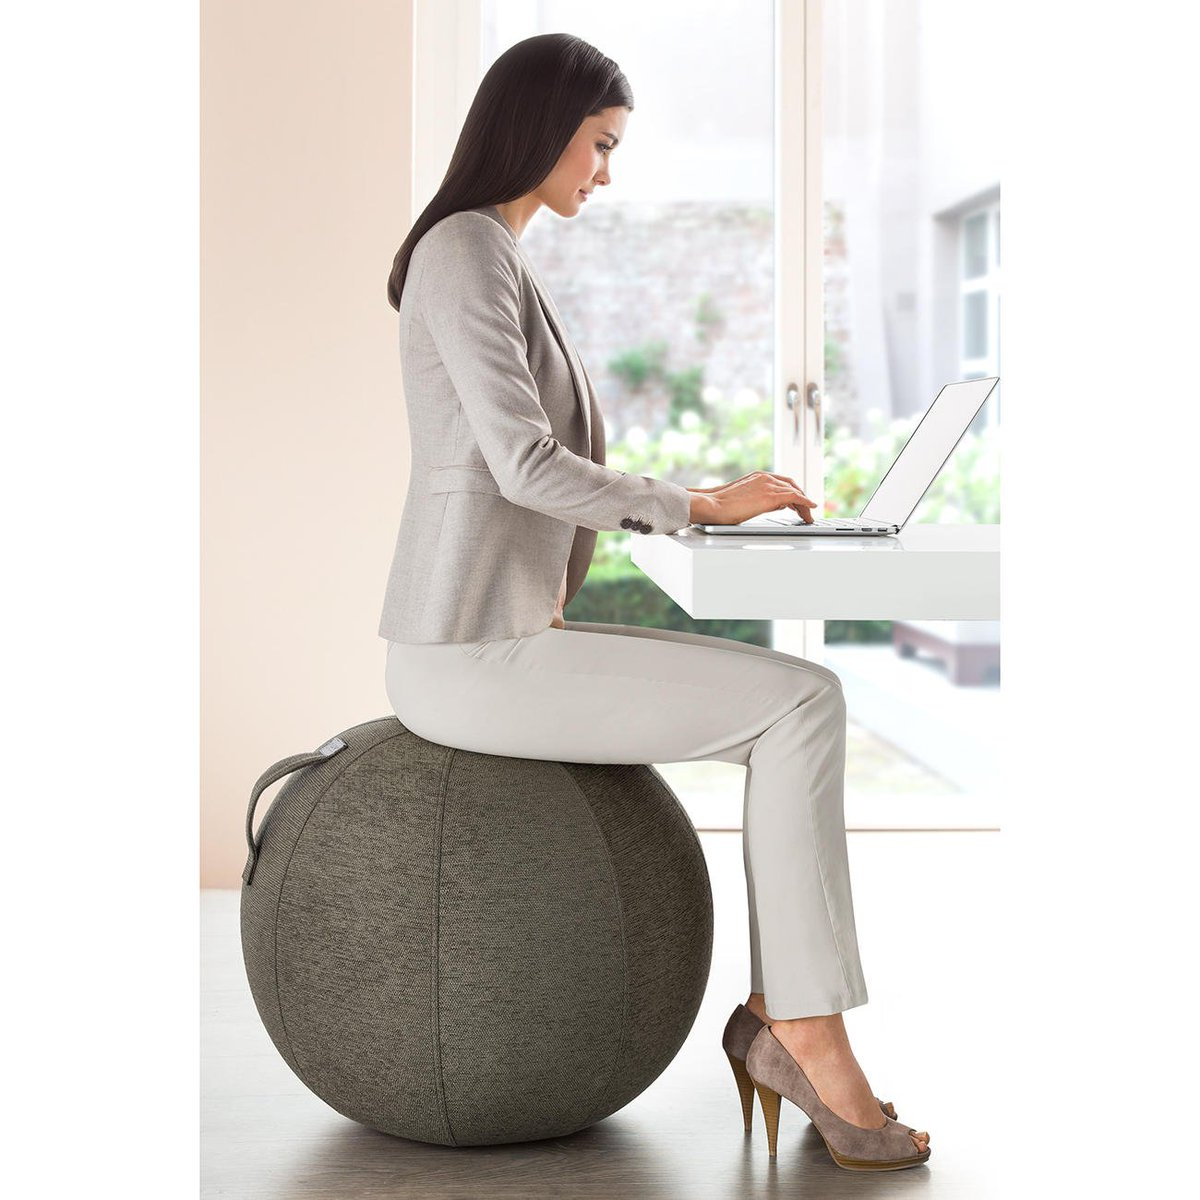 Chaise De Bureau Ballon La Bulle Workplace On Twitter